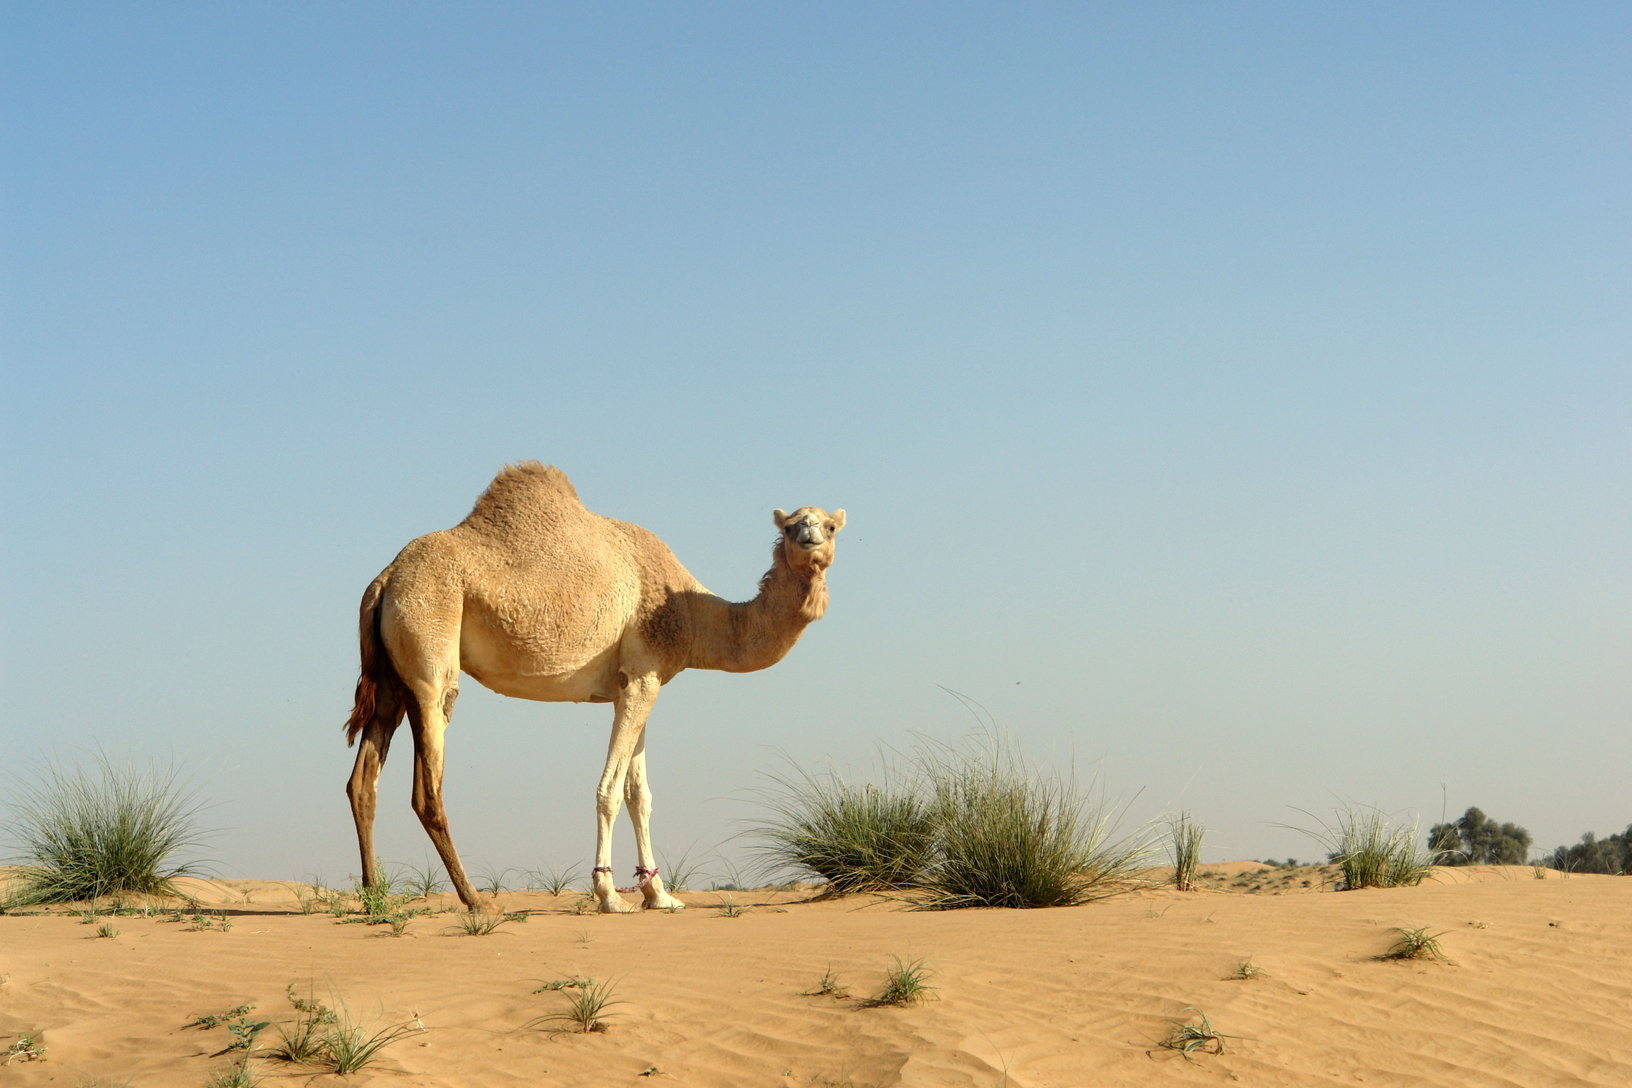 Animal camel photos